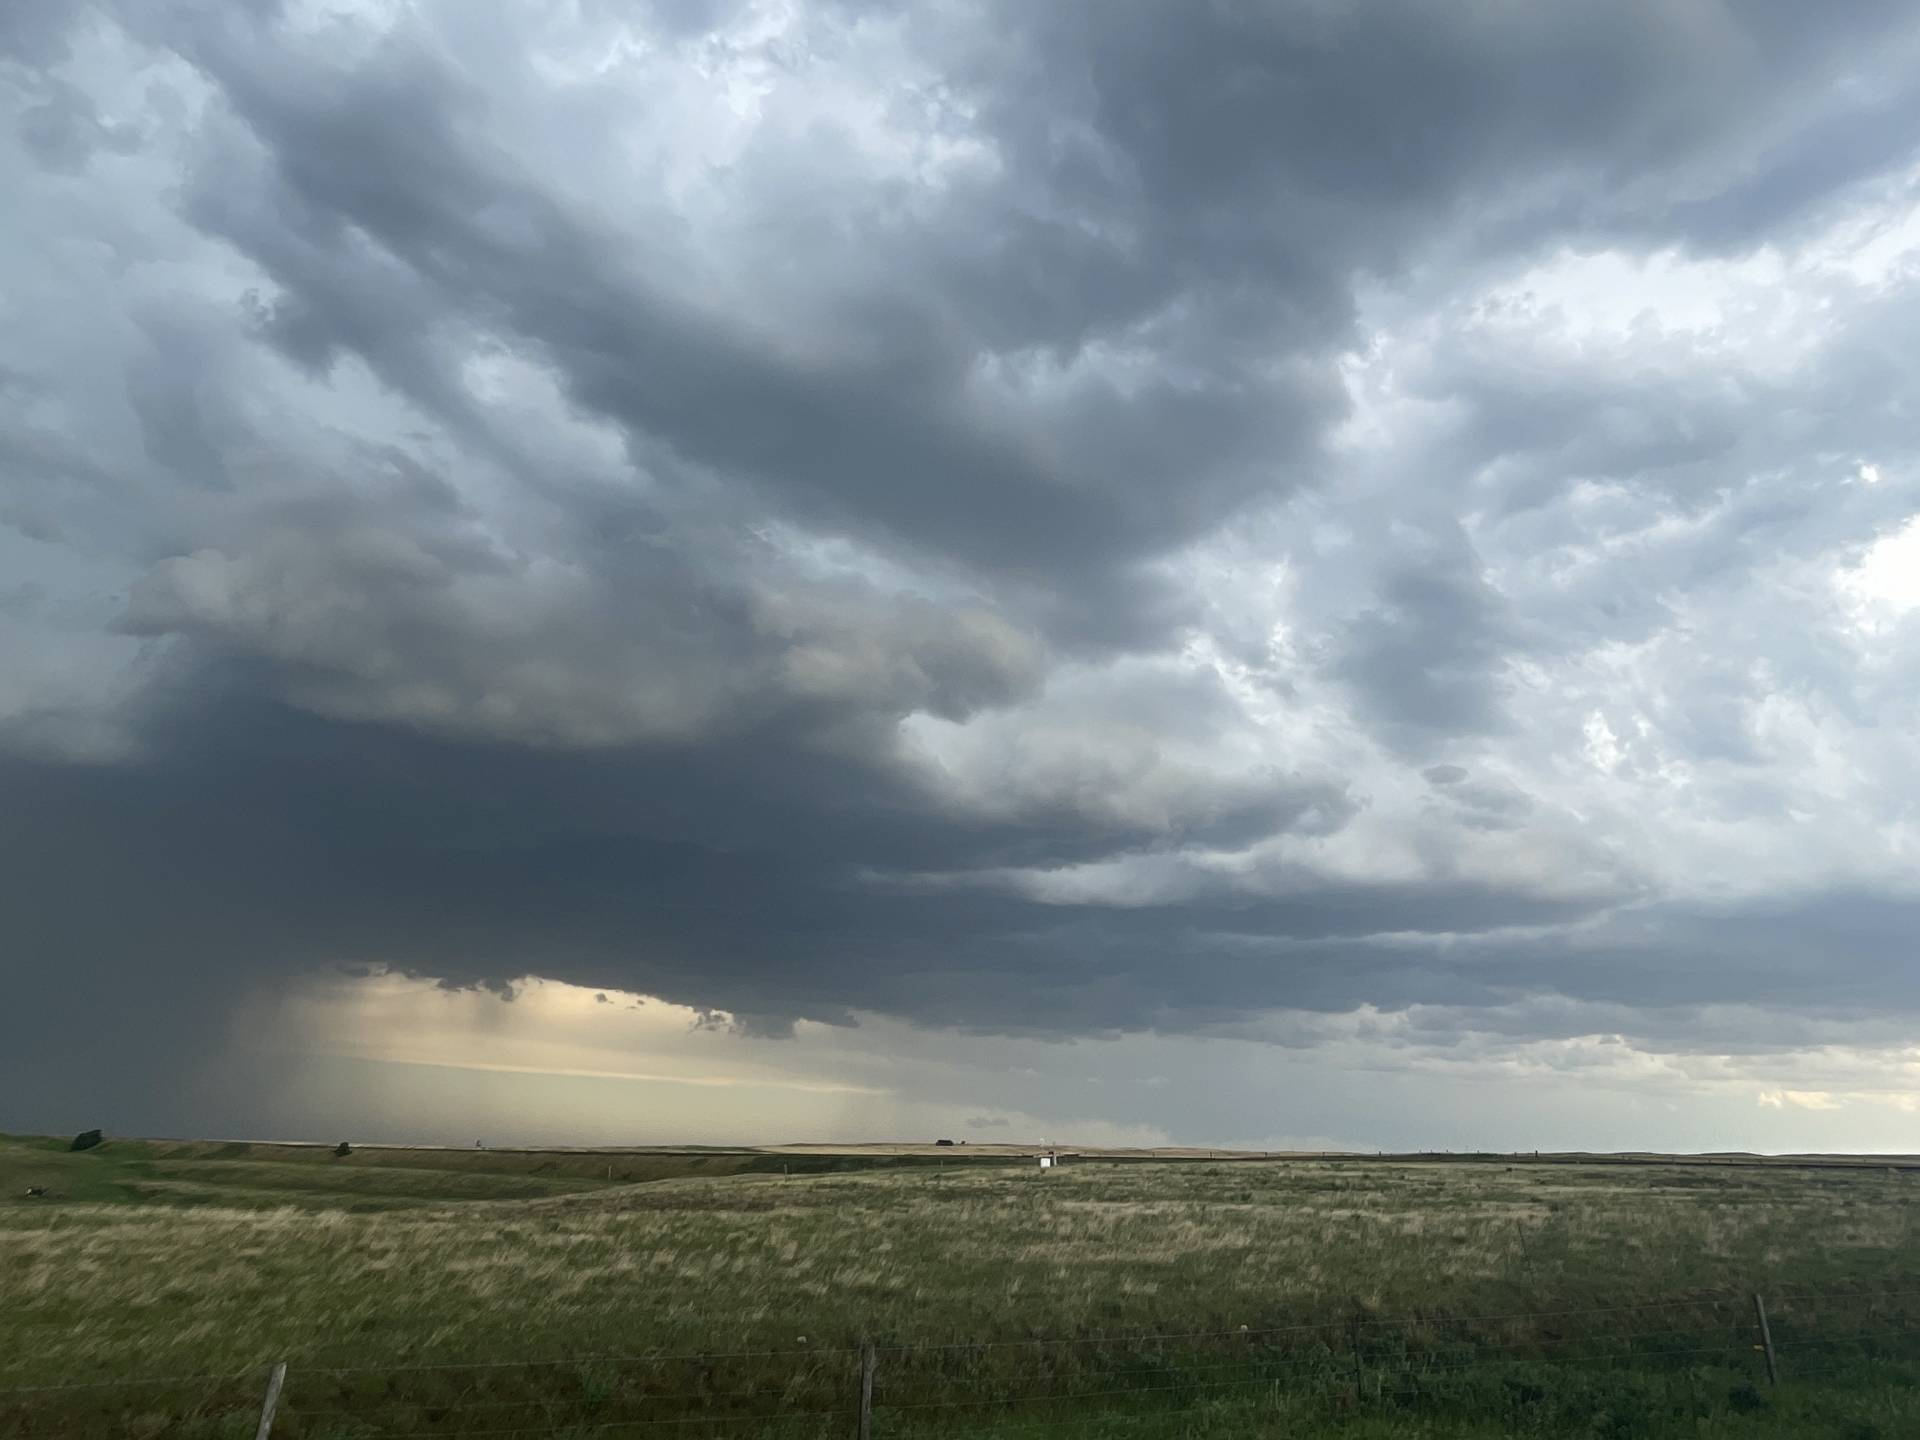 Funnel 5 dissipating south of McGee @648pm